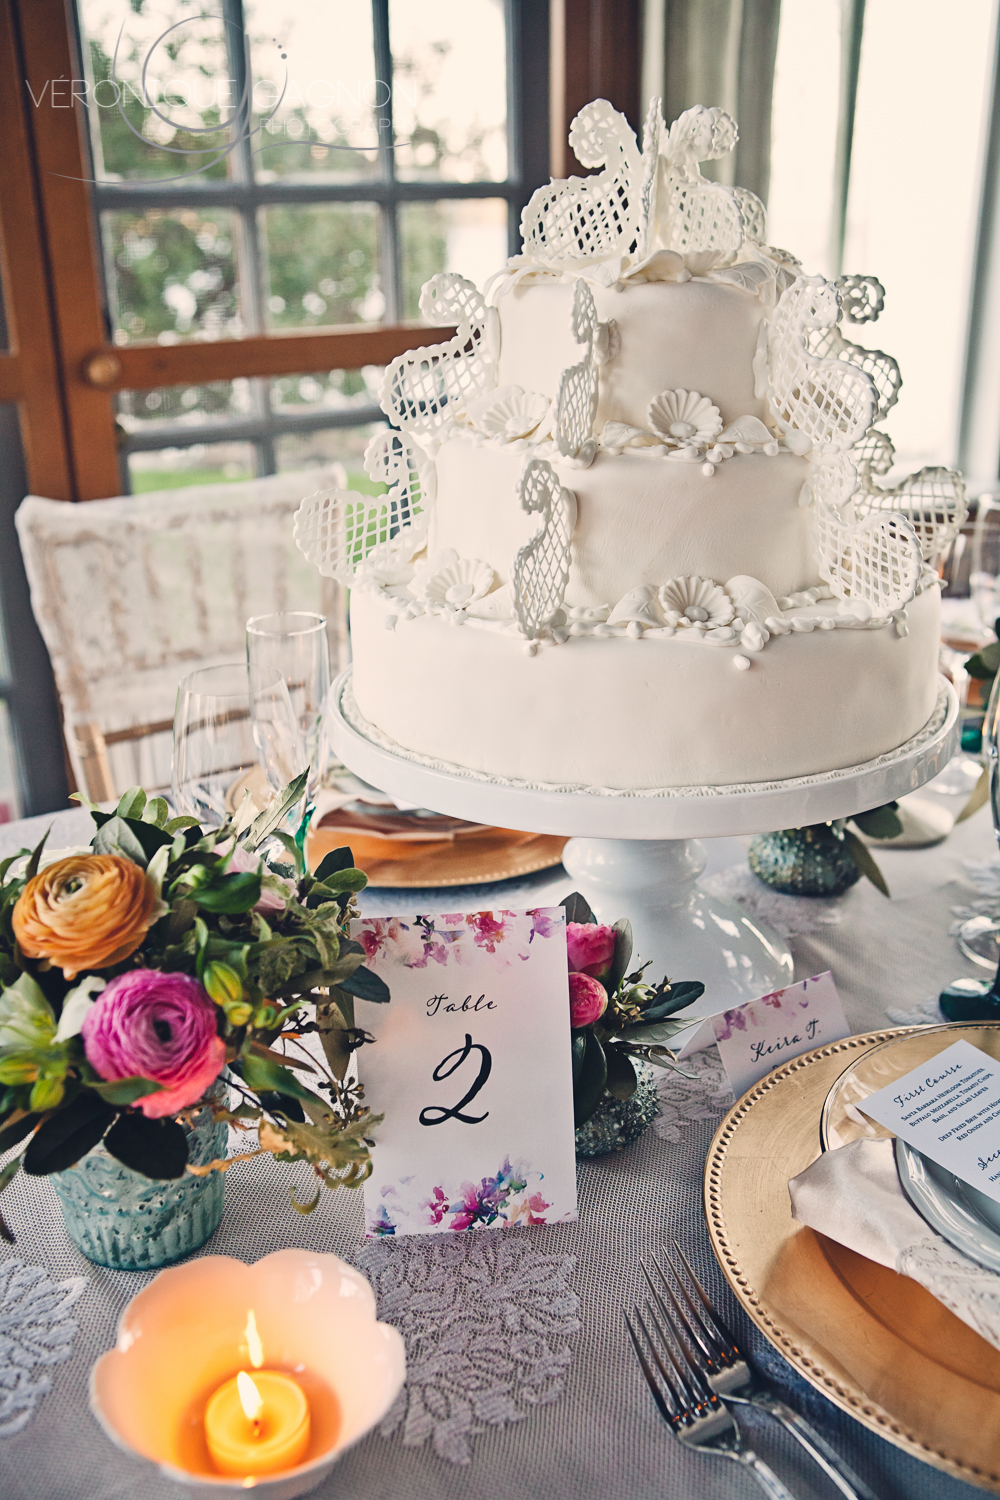 Wedding cake by the Sooke Harbour House's pastry chef.